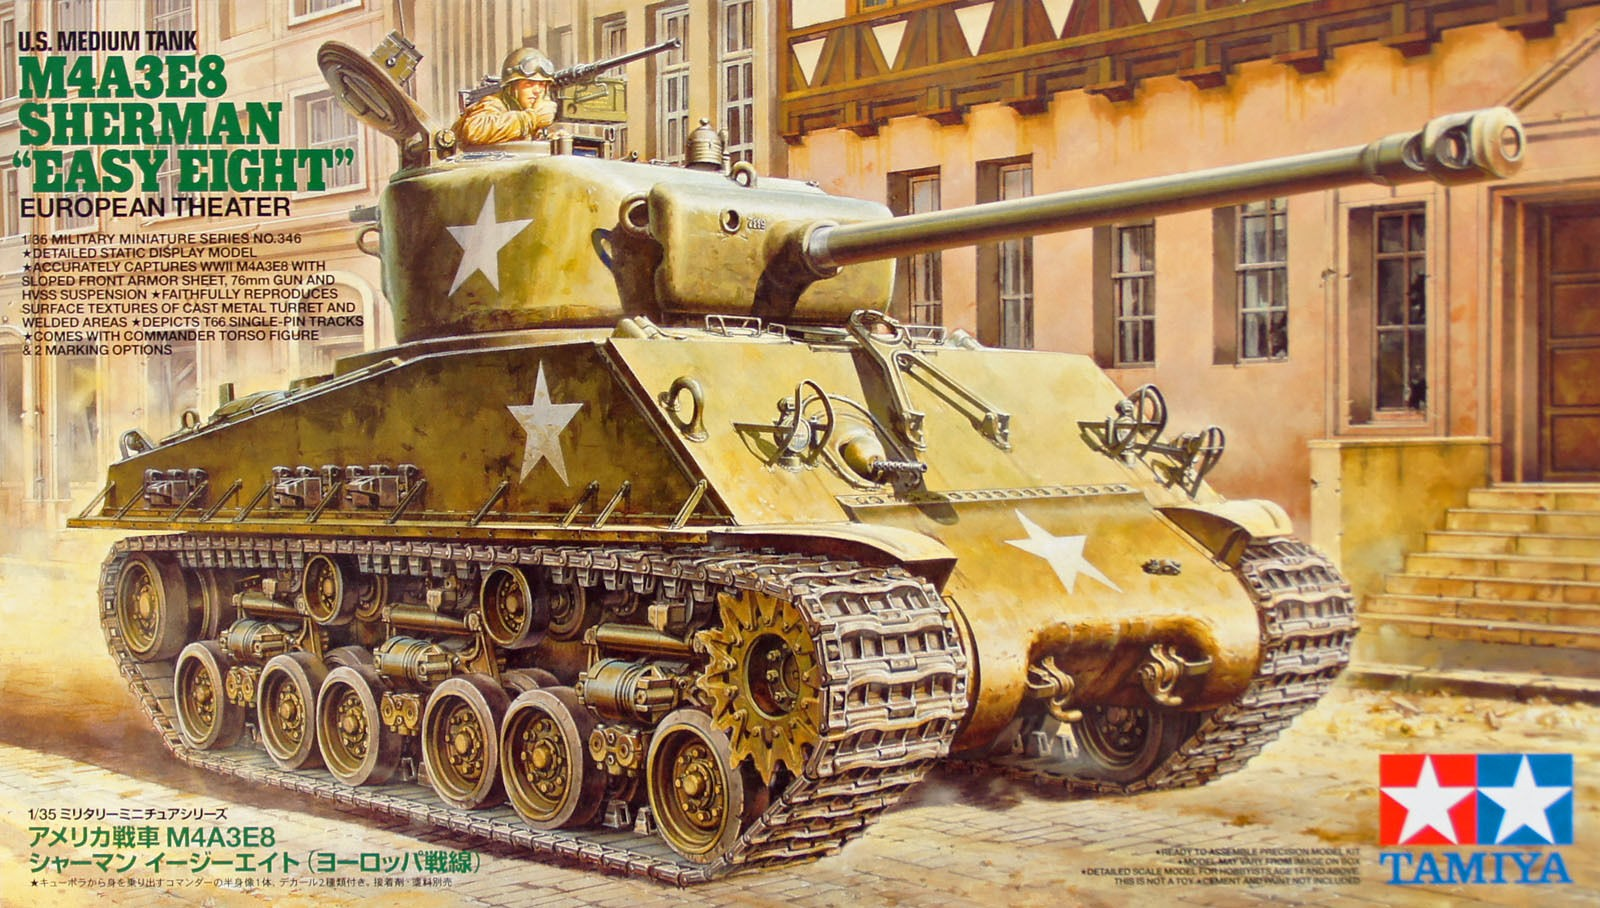 "Allied Medium Tank M4A3E8 Sherman - ""Easy Eight"" European Theater - Tamiya 35346 - plastic model kit - 1/35 scale"